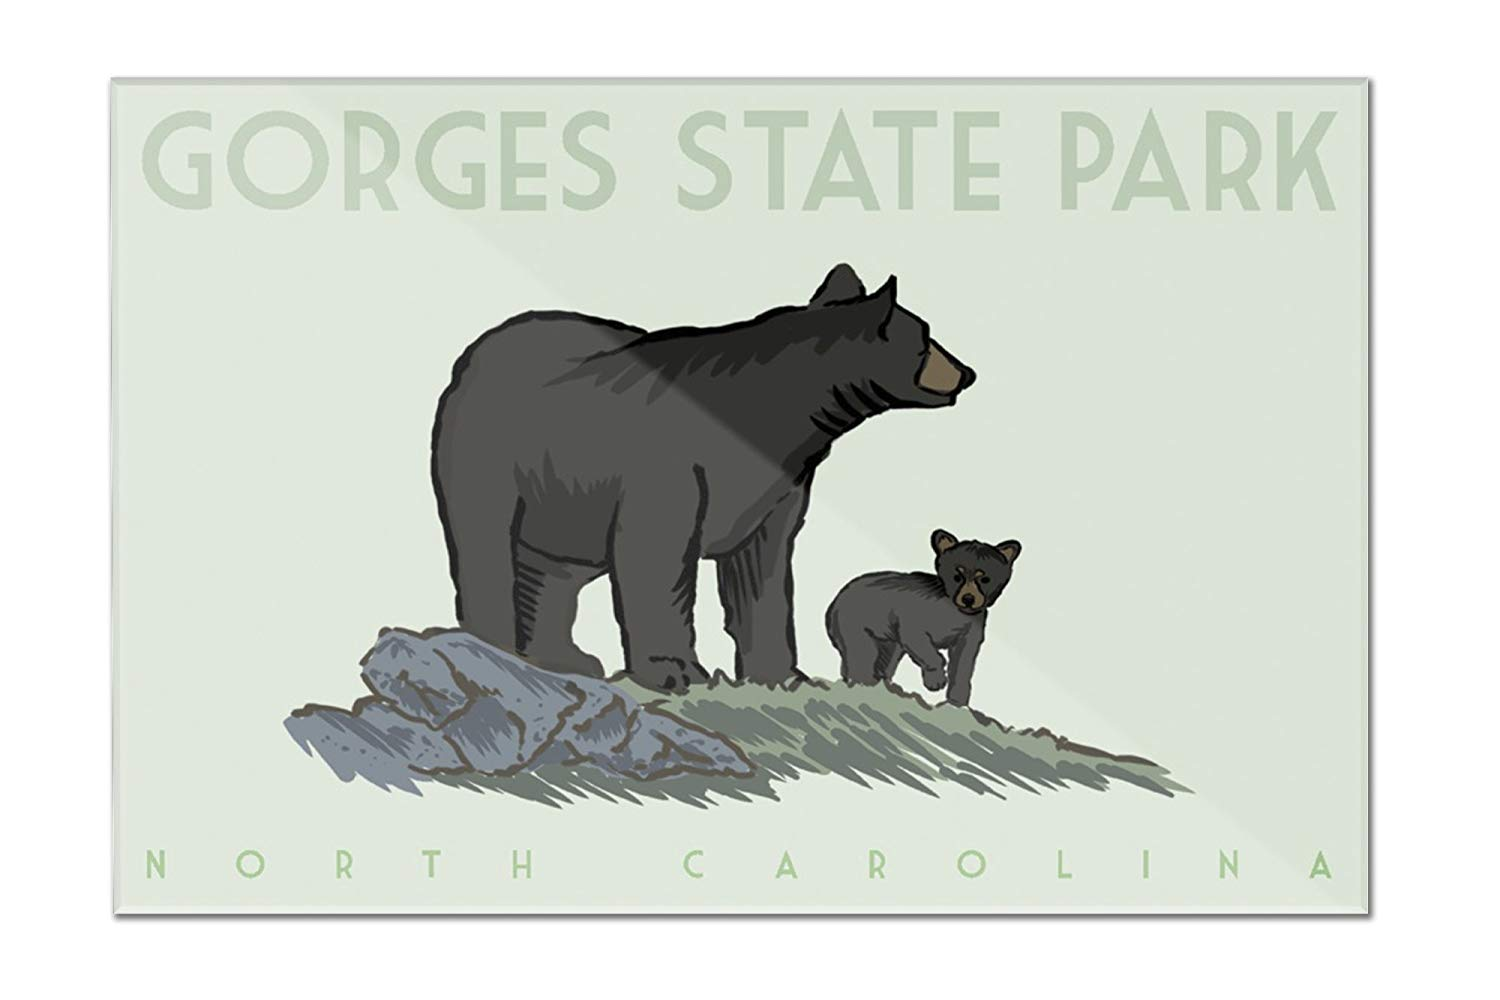 State bear north carolina clipart png transparent library Amazon.com: Gorges State Park, North Carolina - Black Bear ... png transparent library